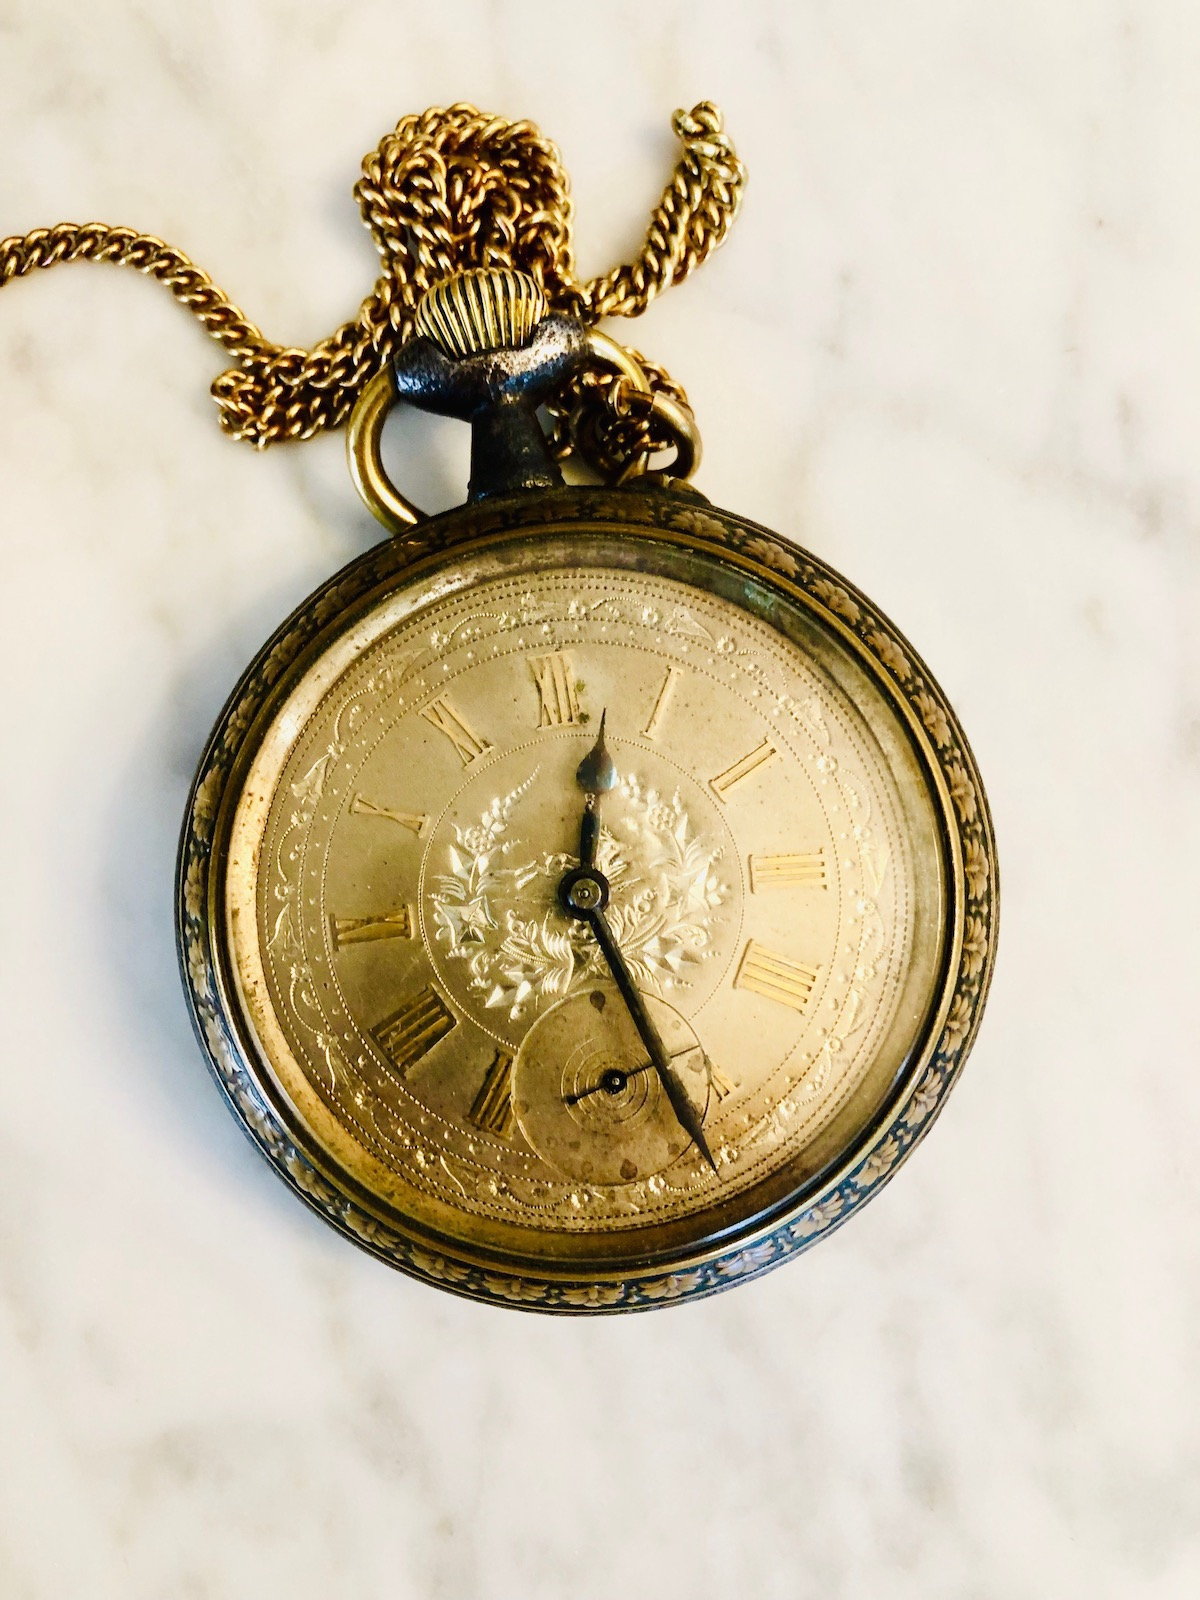 An old pocket watch (roughly 1940), featuring intricate engraving on the dial.